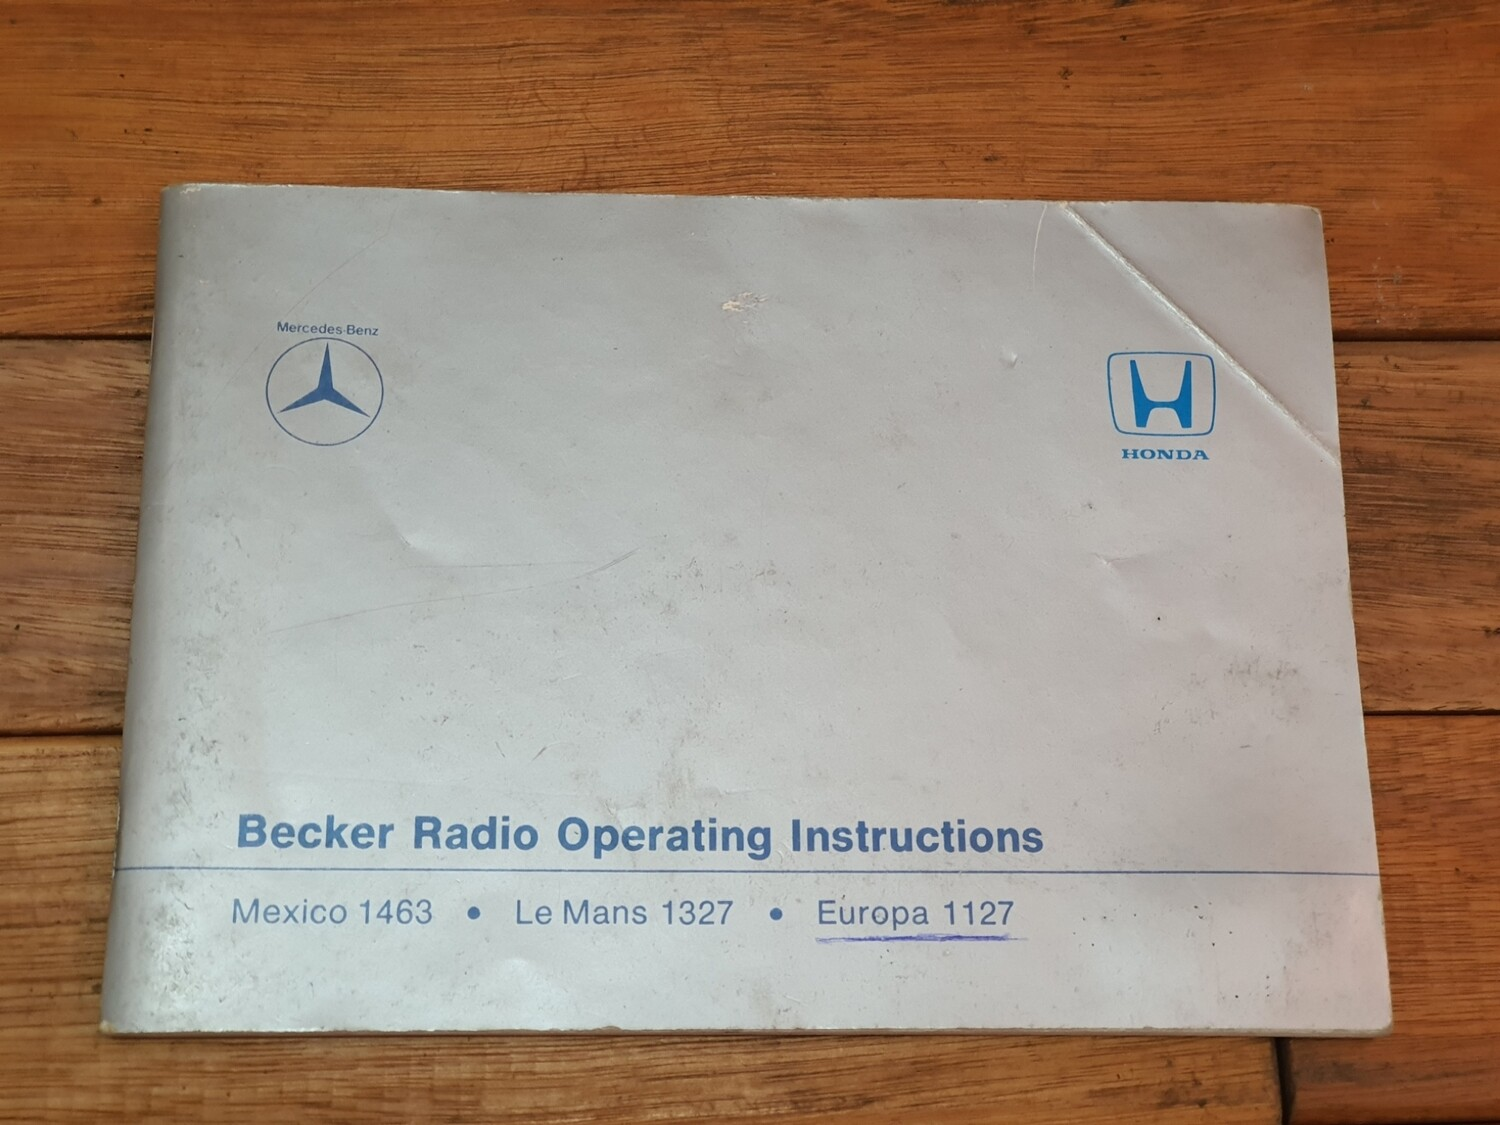 Mercedes-Benz Becker Radio Operating Instructions